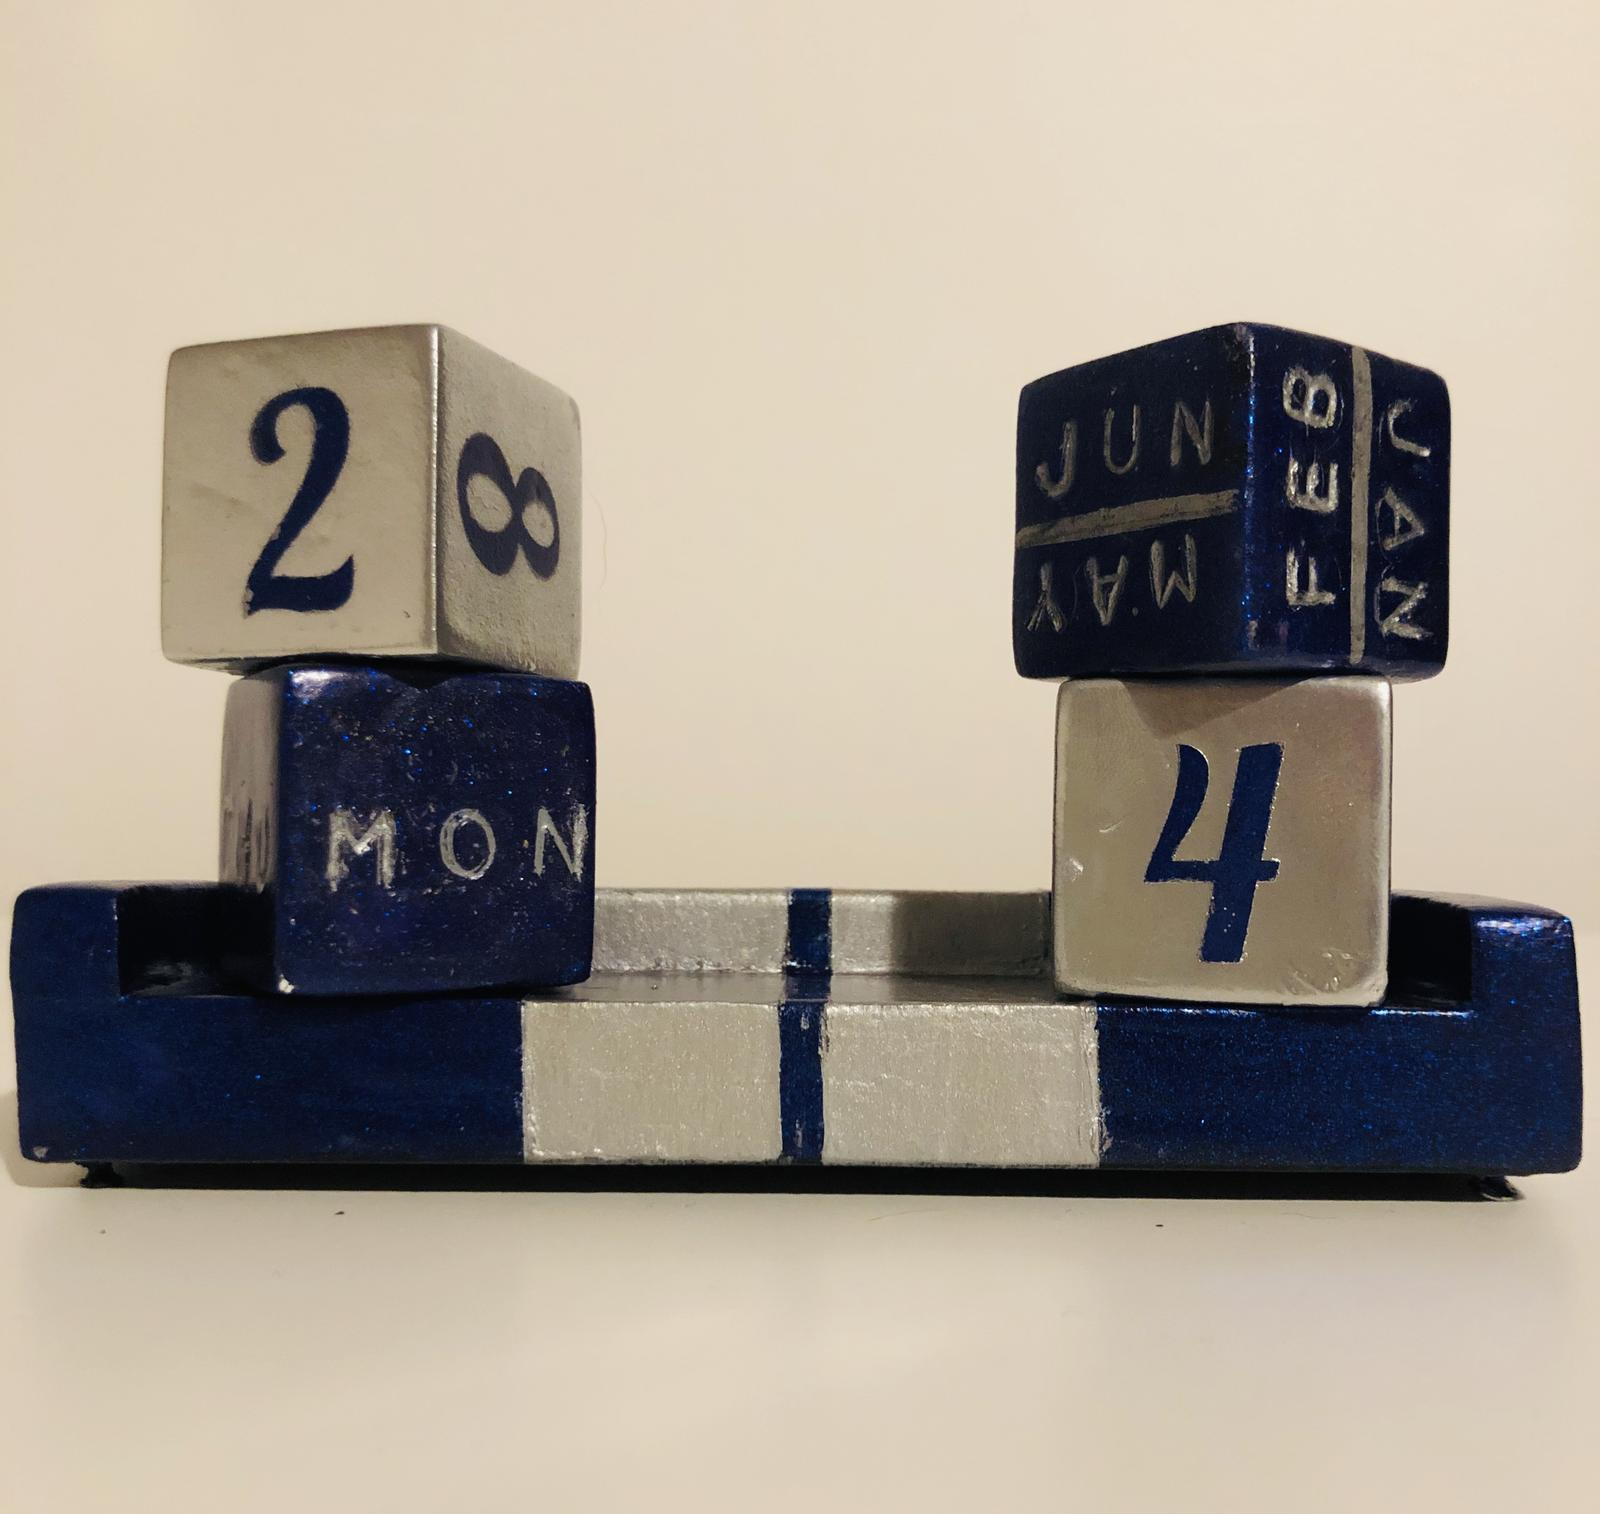 Blue and Silver desk calendar